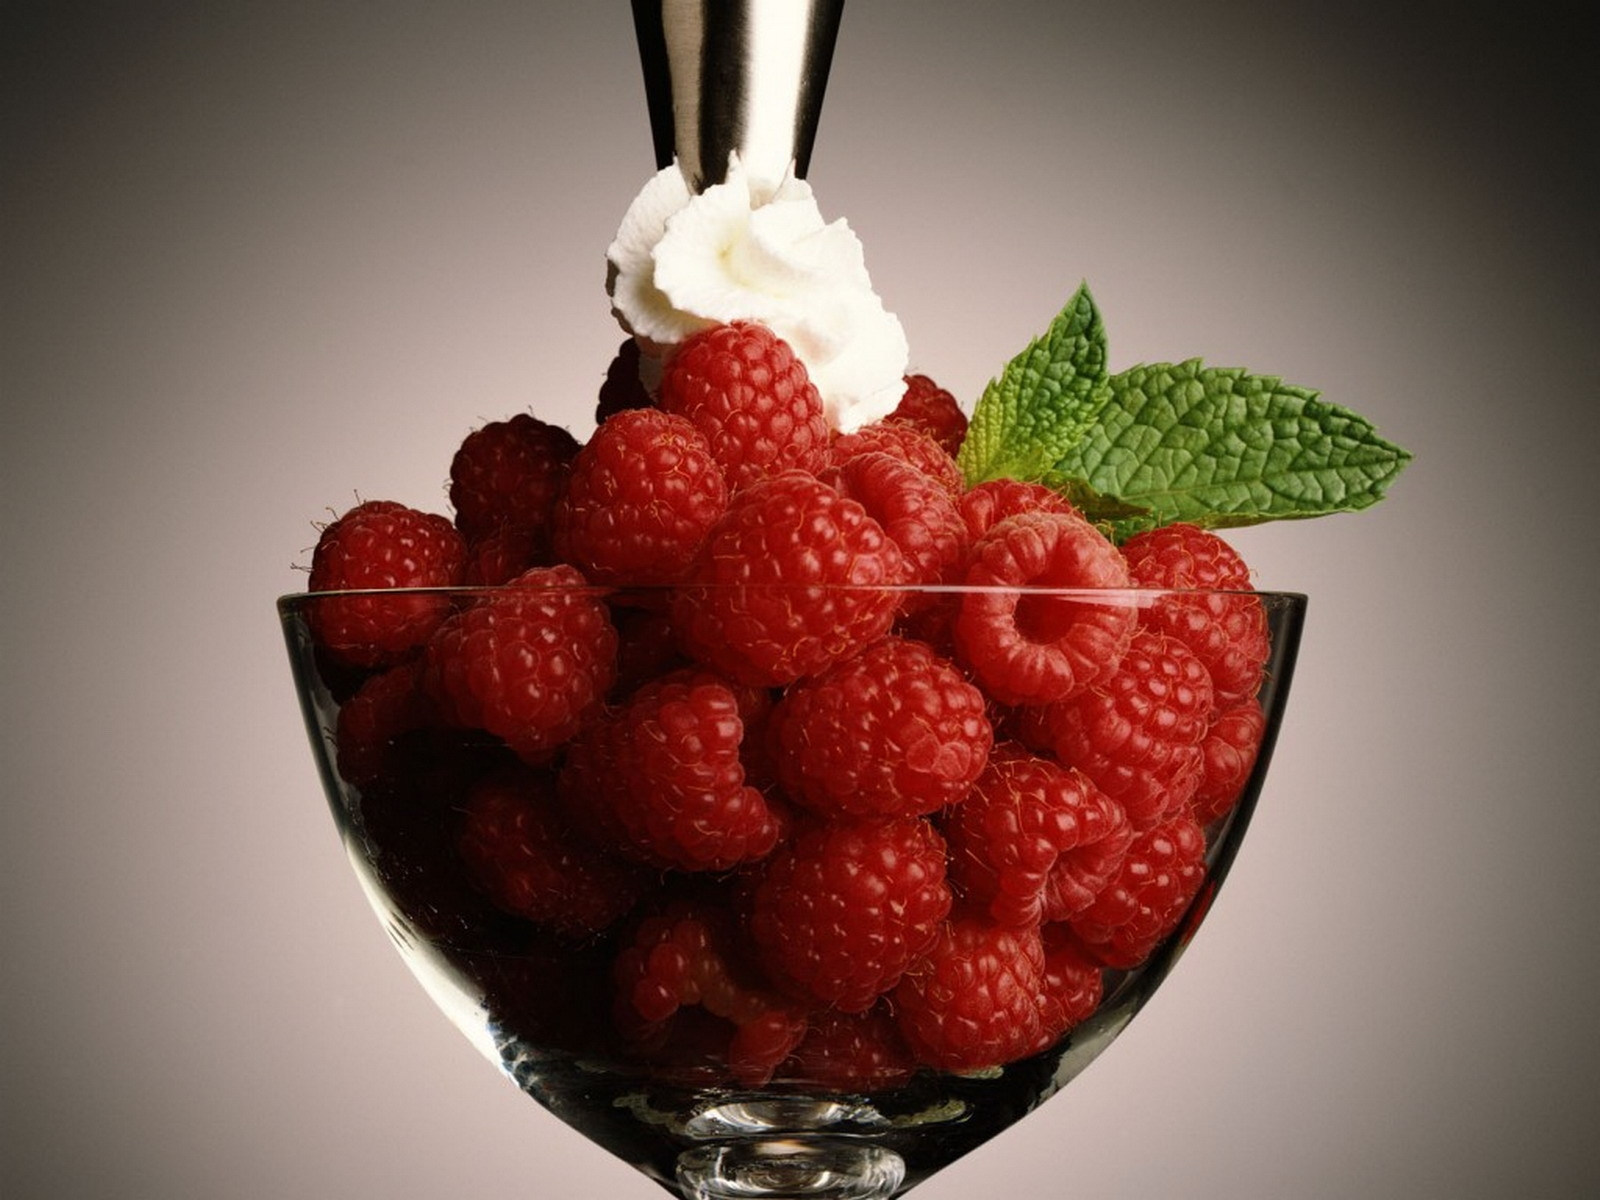 7377 download wallpaper Fruits, Food, Dessert, Raspberry, Berries screensavers and pictures for free